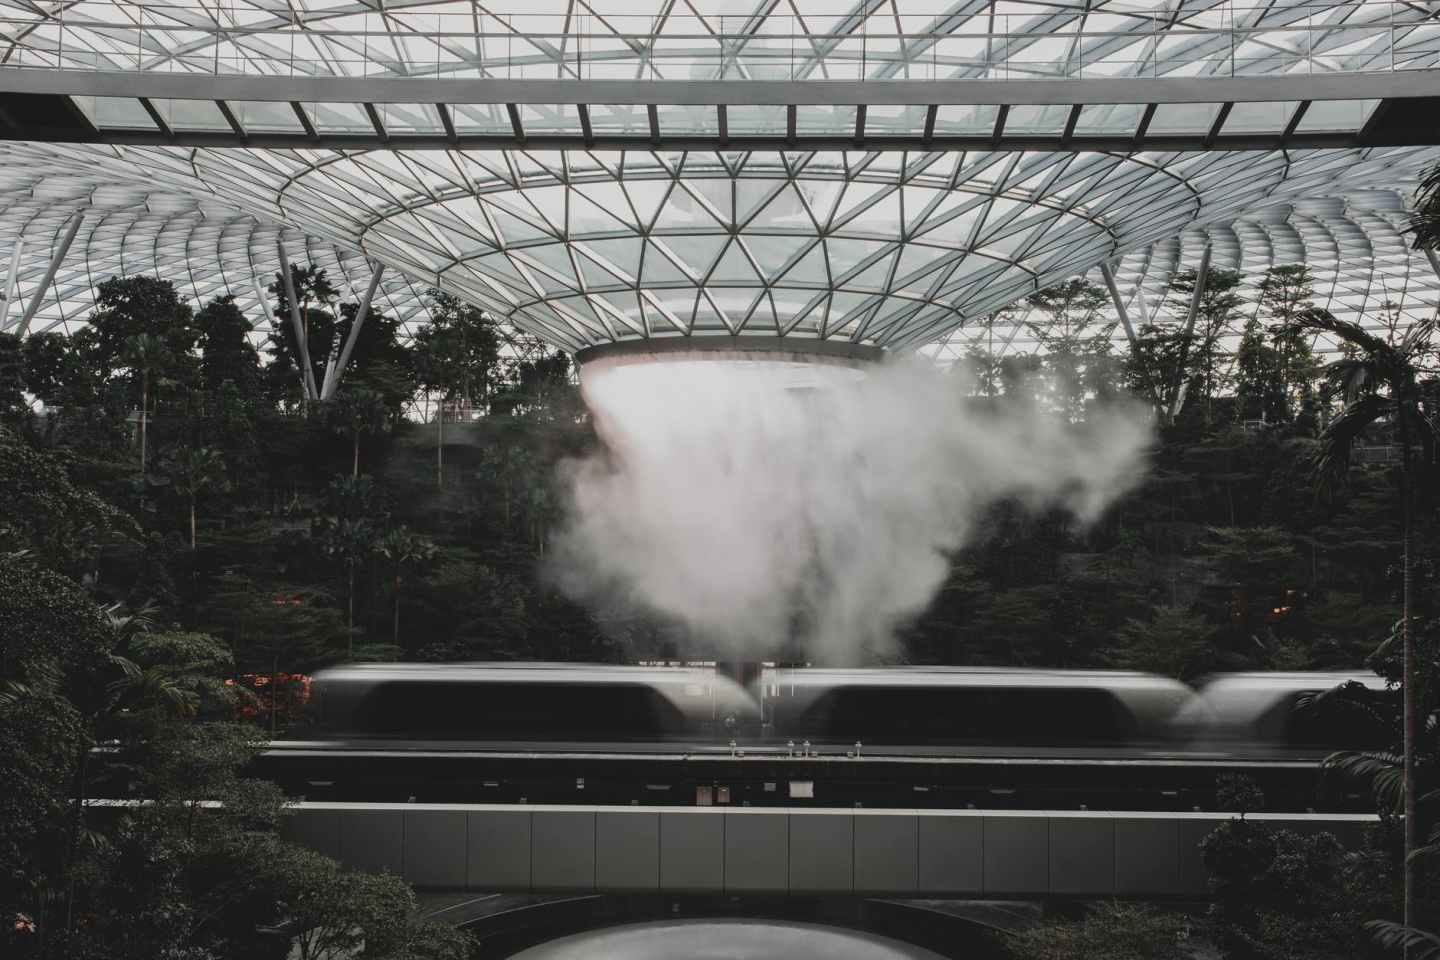 modern train riding under indoors waterfall in modern airport